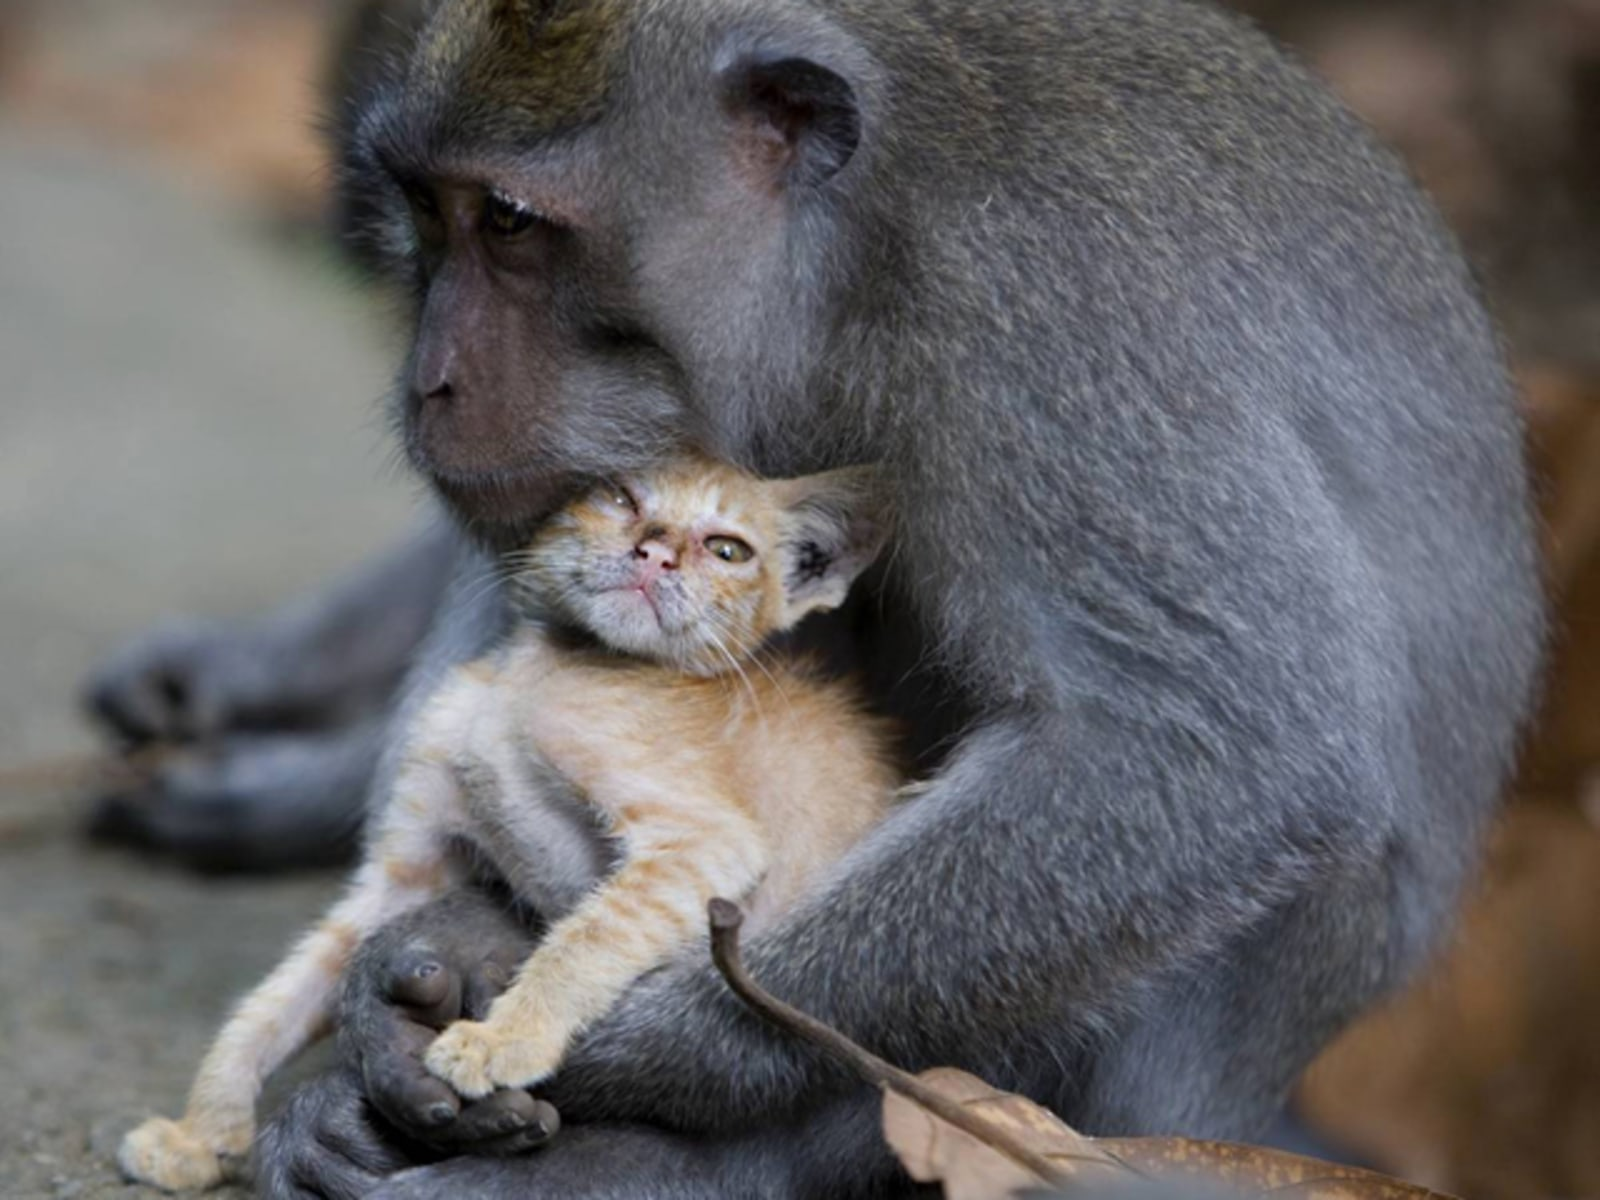 WILD MONKEY ADOPTS KITTEN